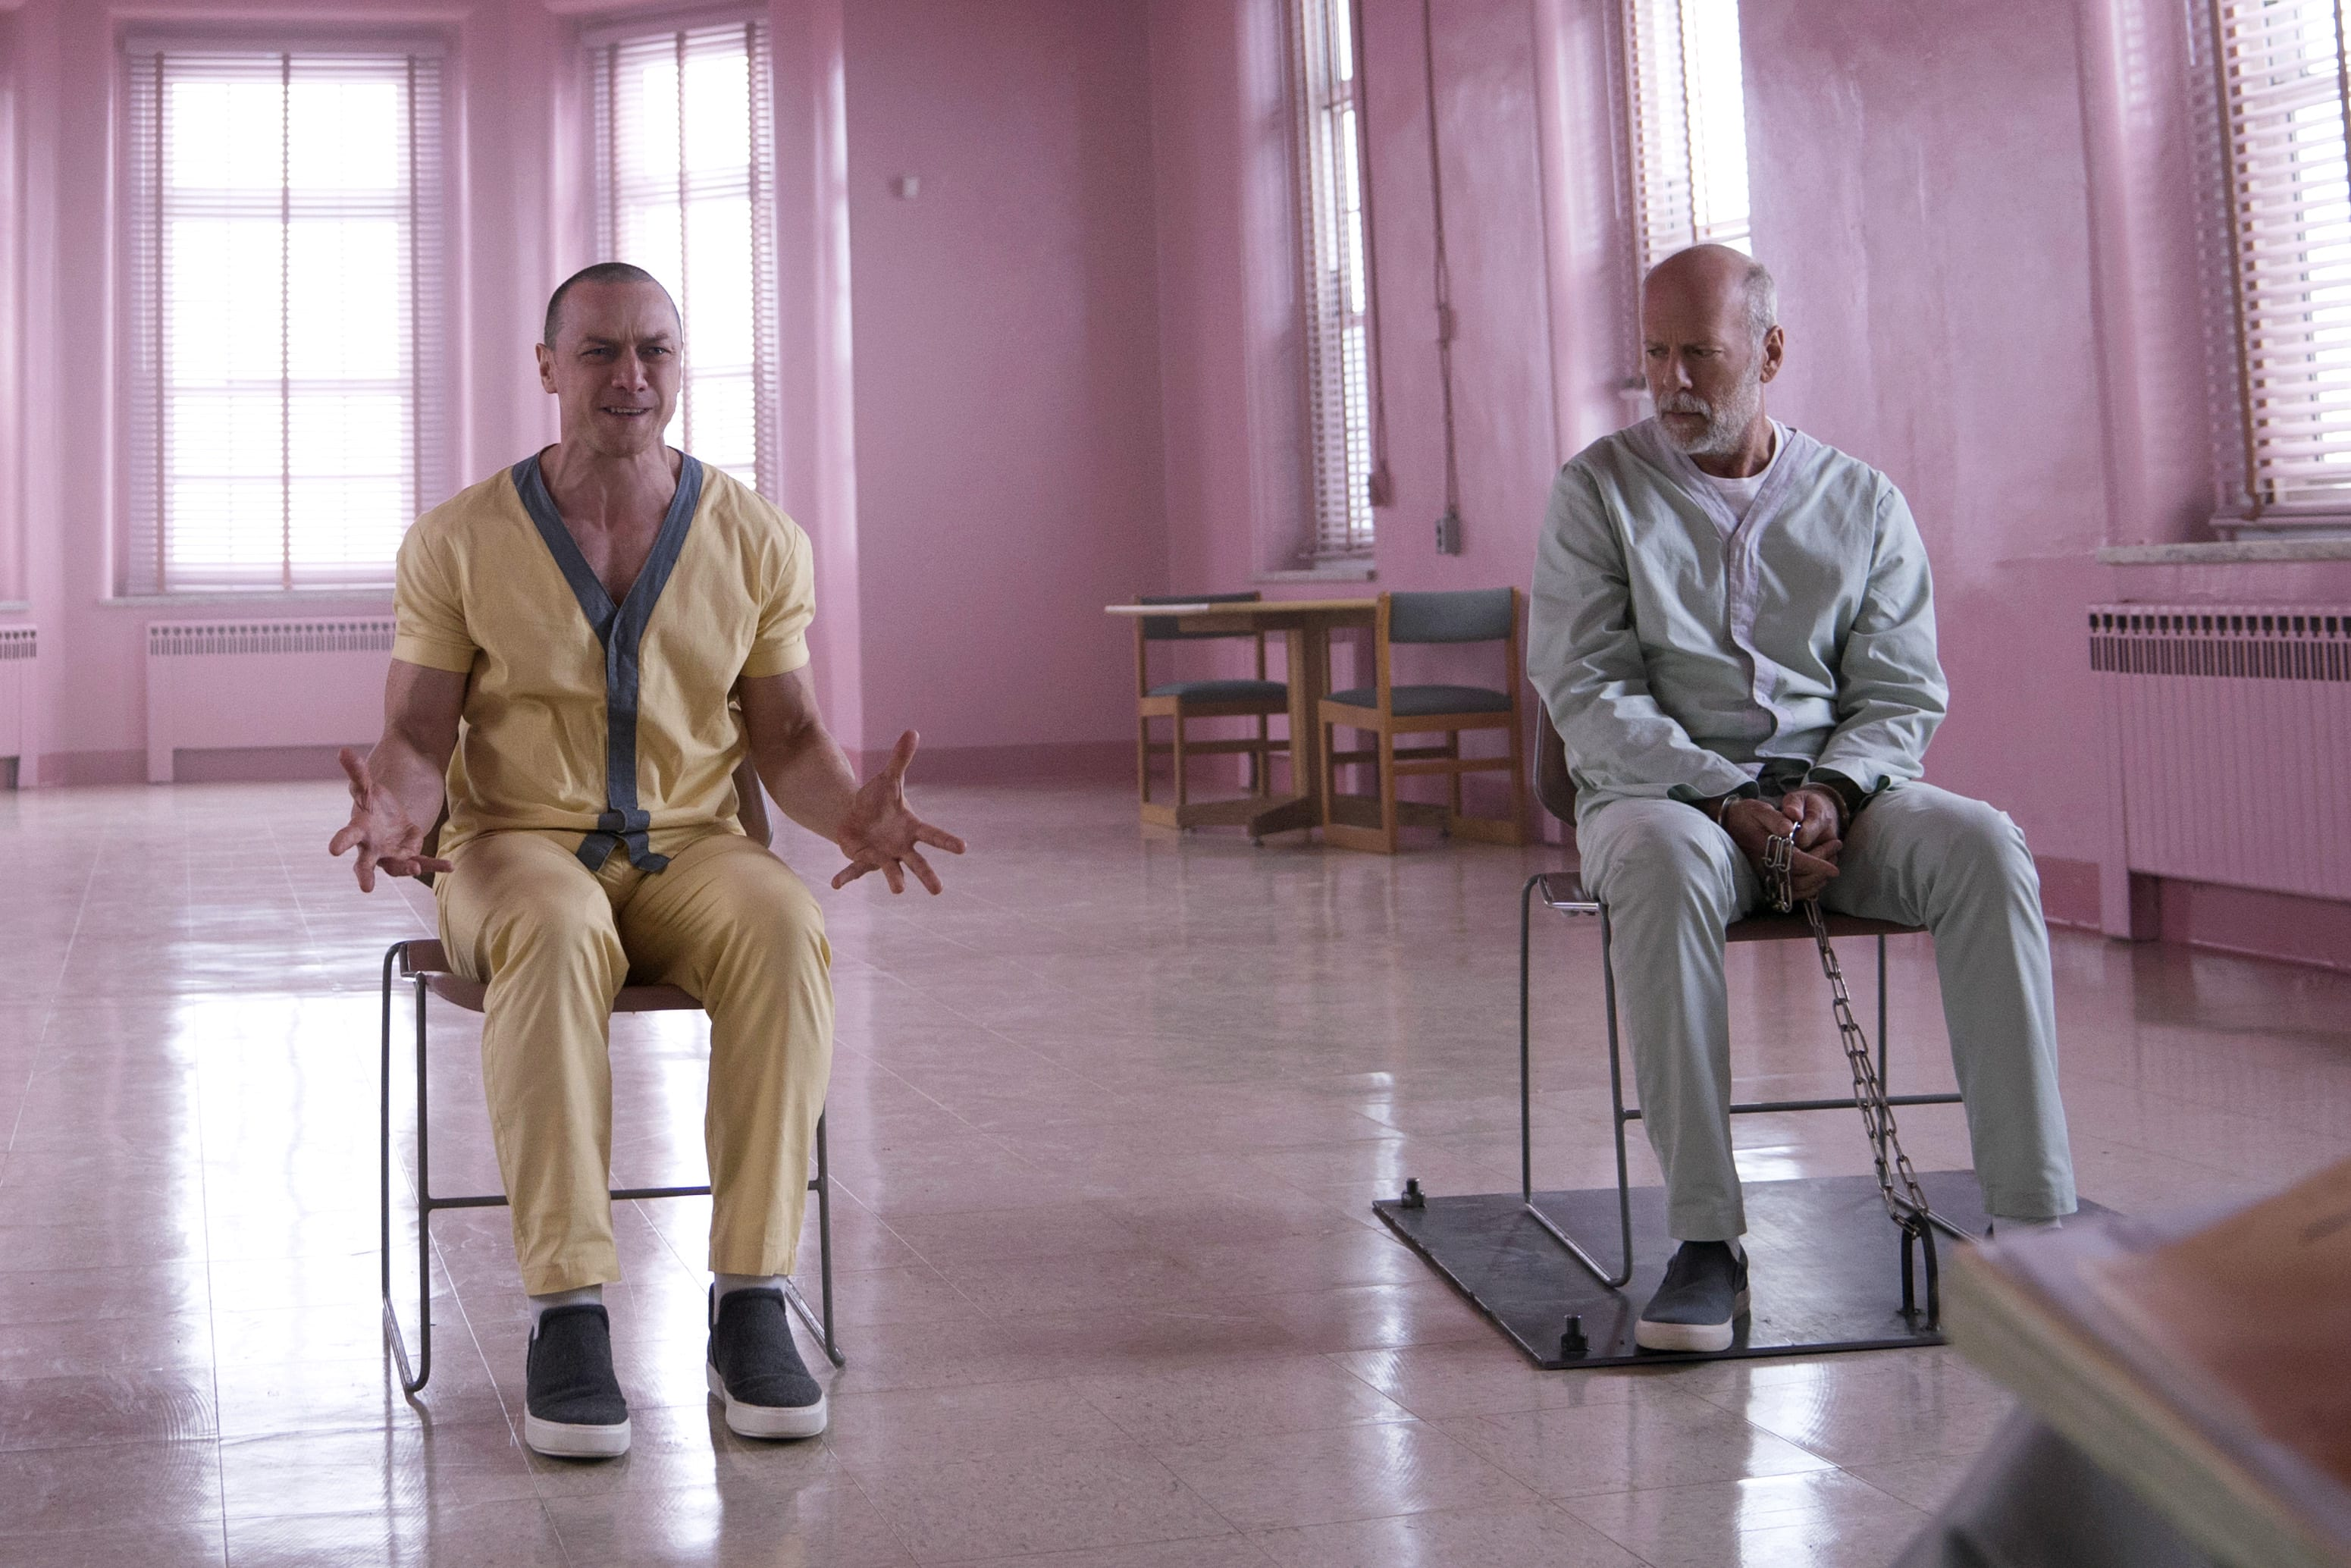 Samuel L Jackson, James McAvoy, Bruce Willis, and Sarah Paulson star in an asylum scene from the 2019 movie